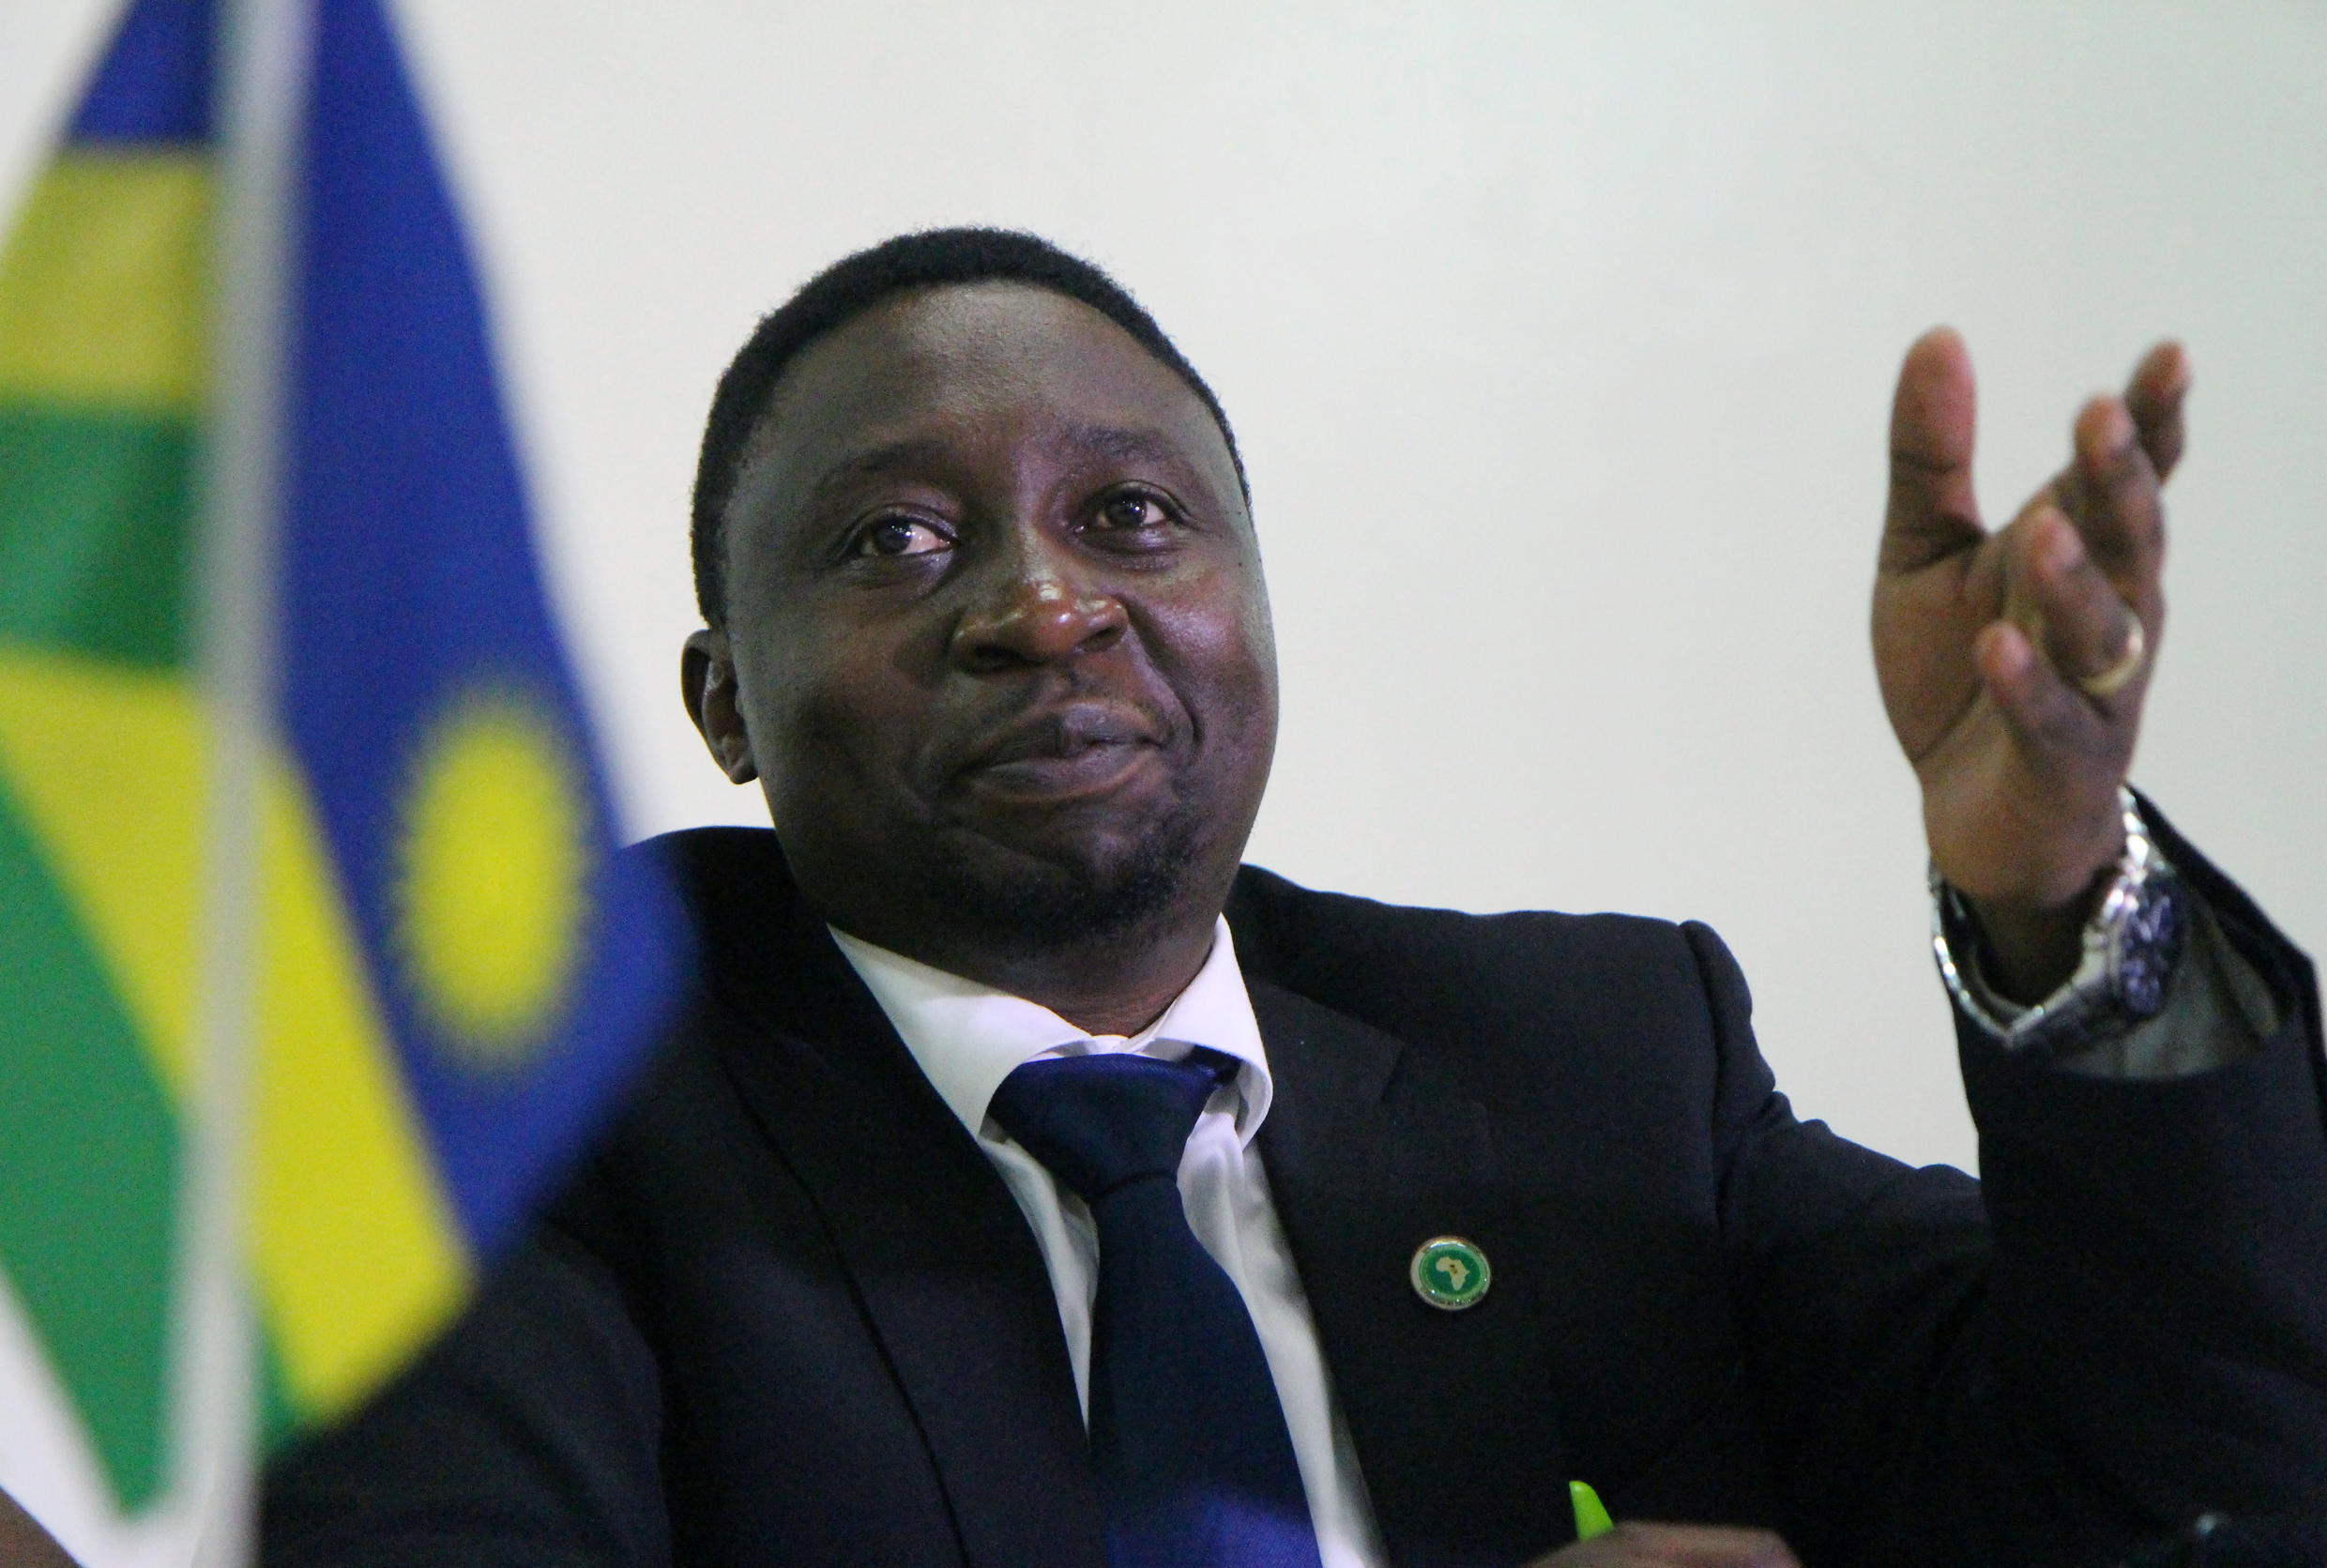 Frank Habineza speaks during a meeting of the Green Party in Kigali on 17 December 2016.